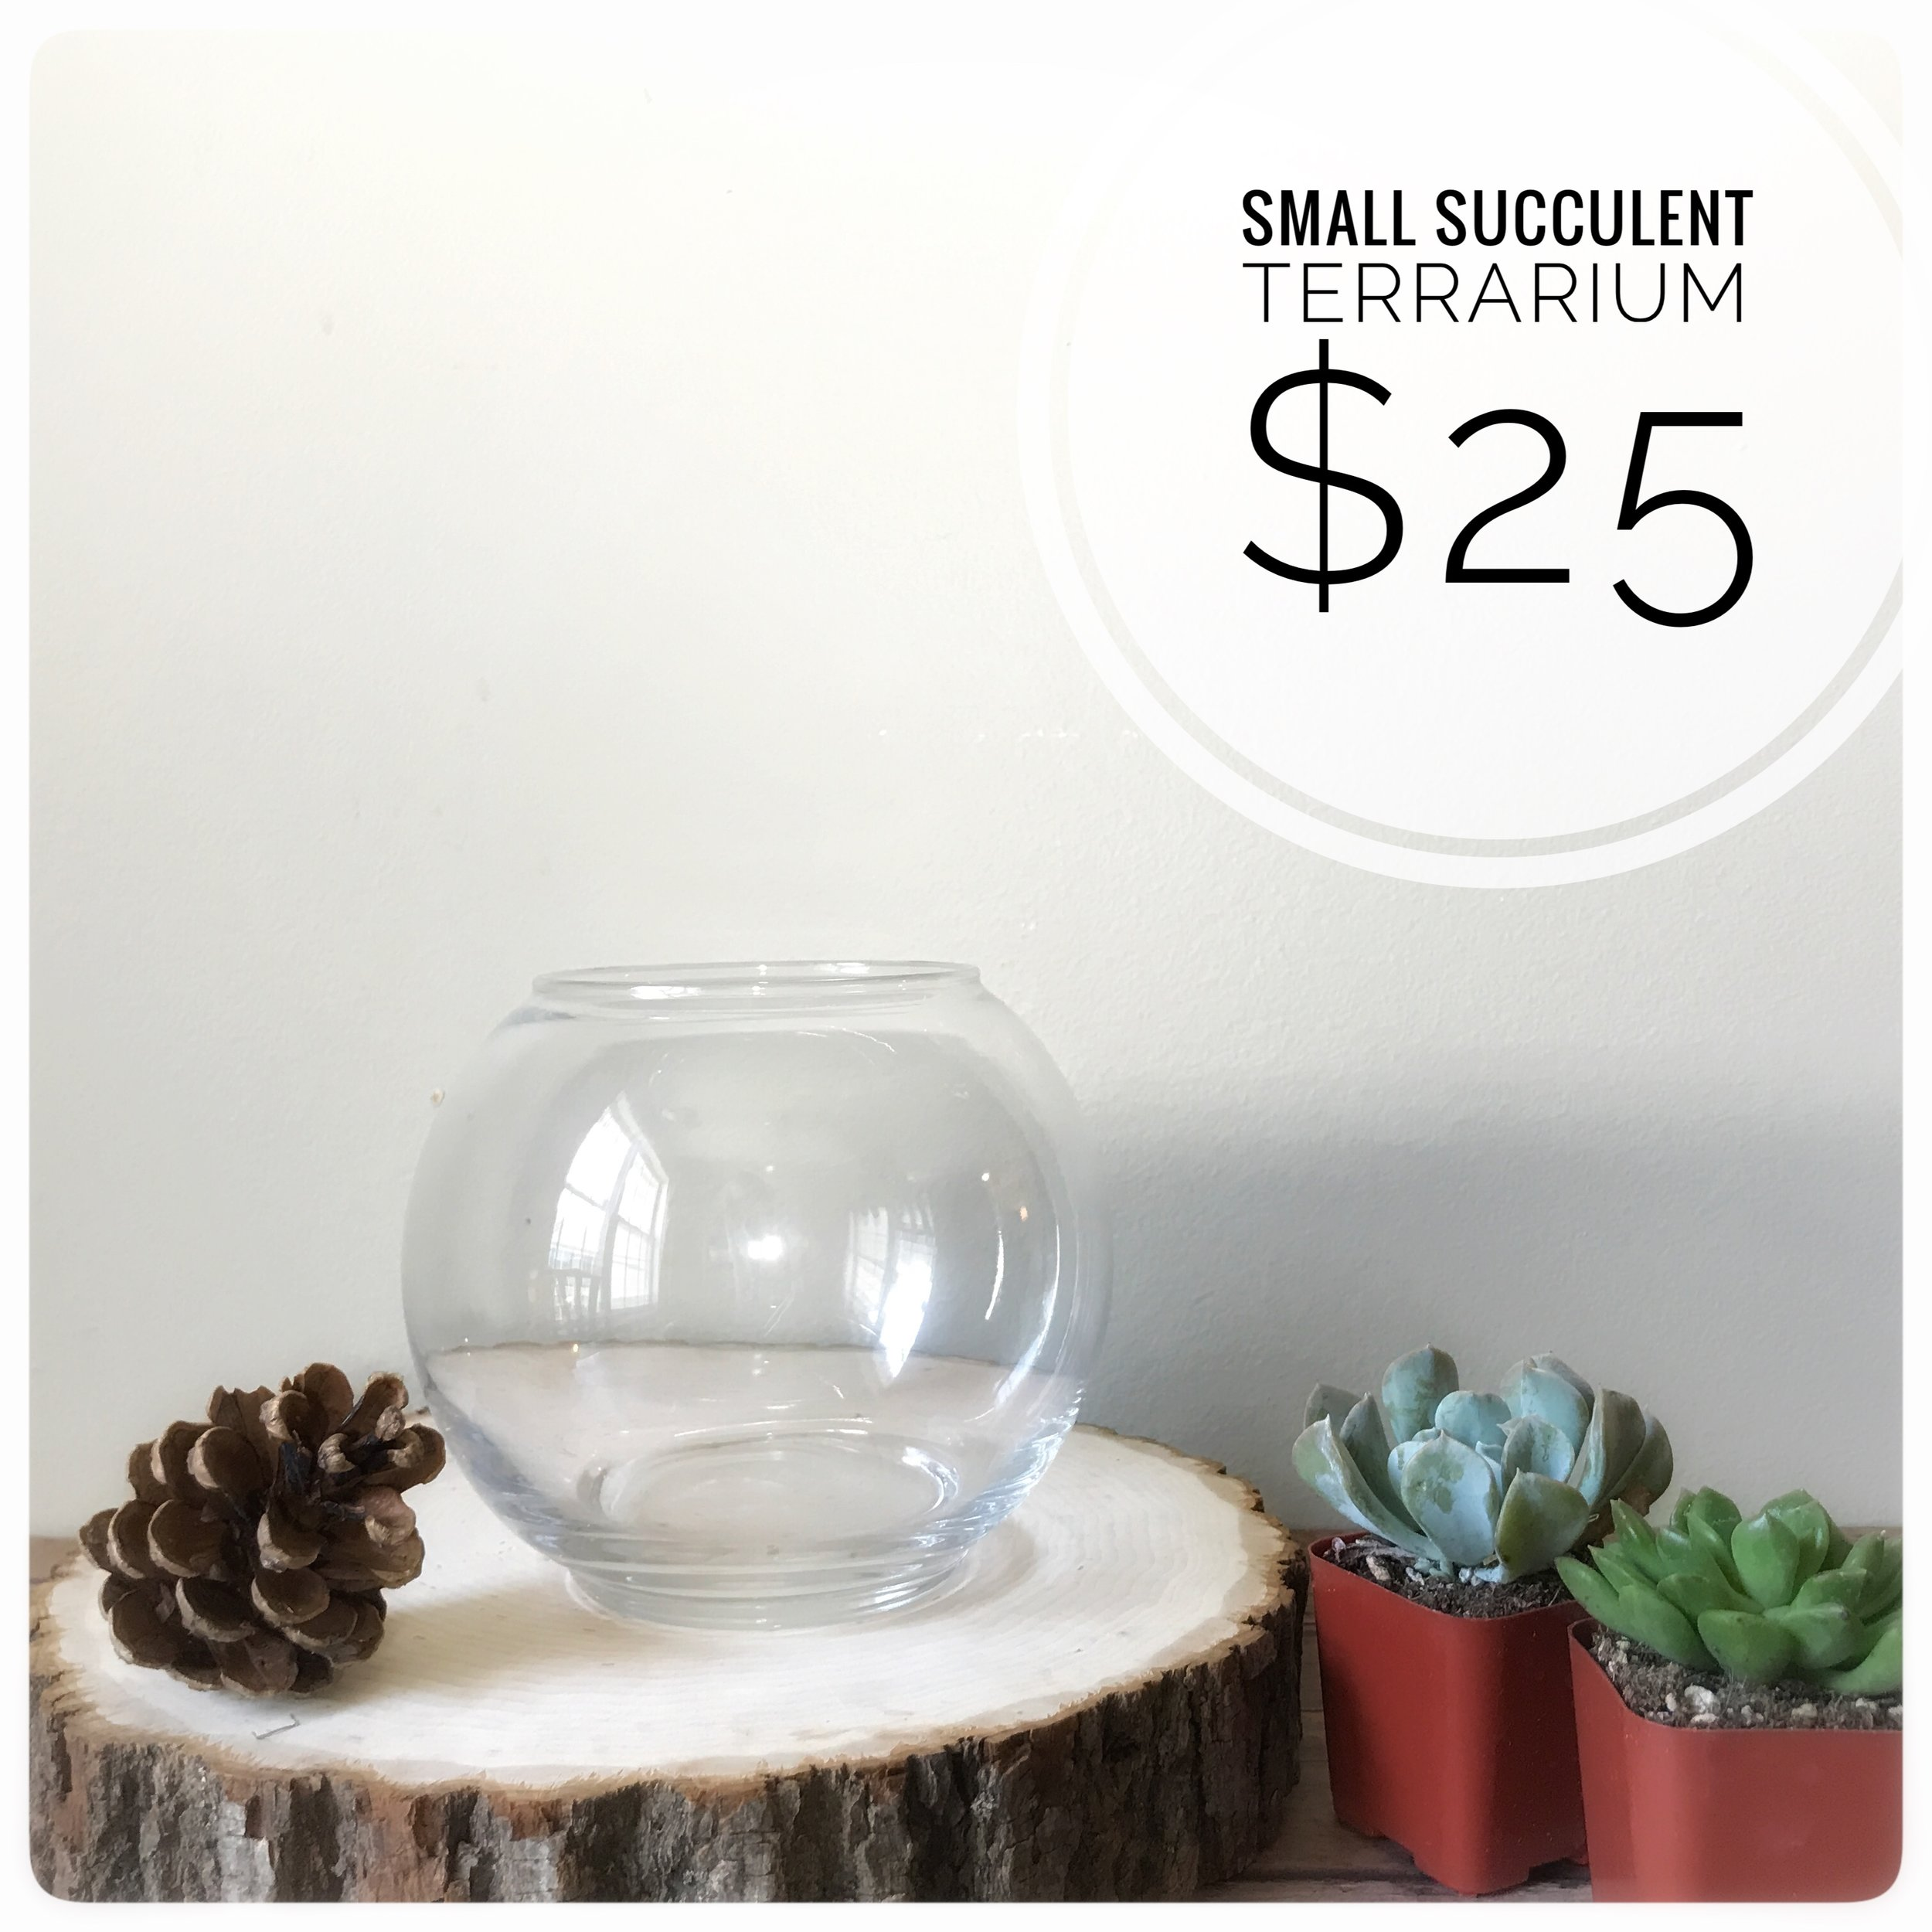 Includes two succulents